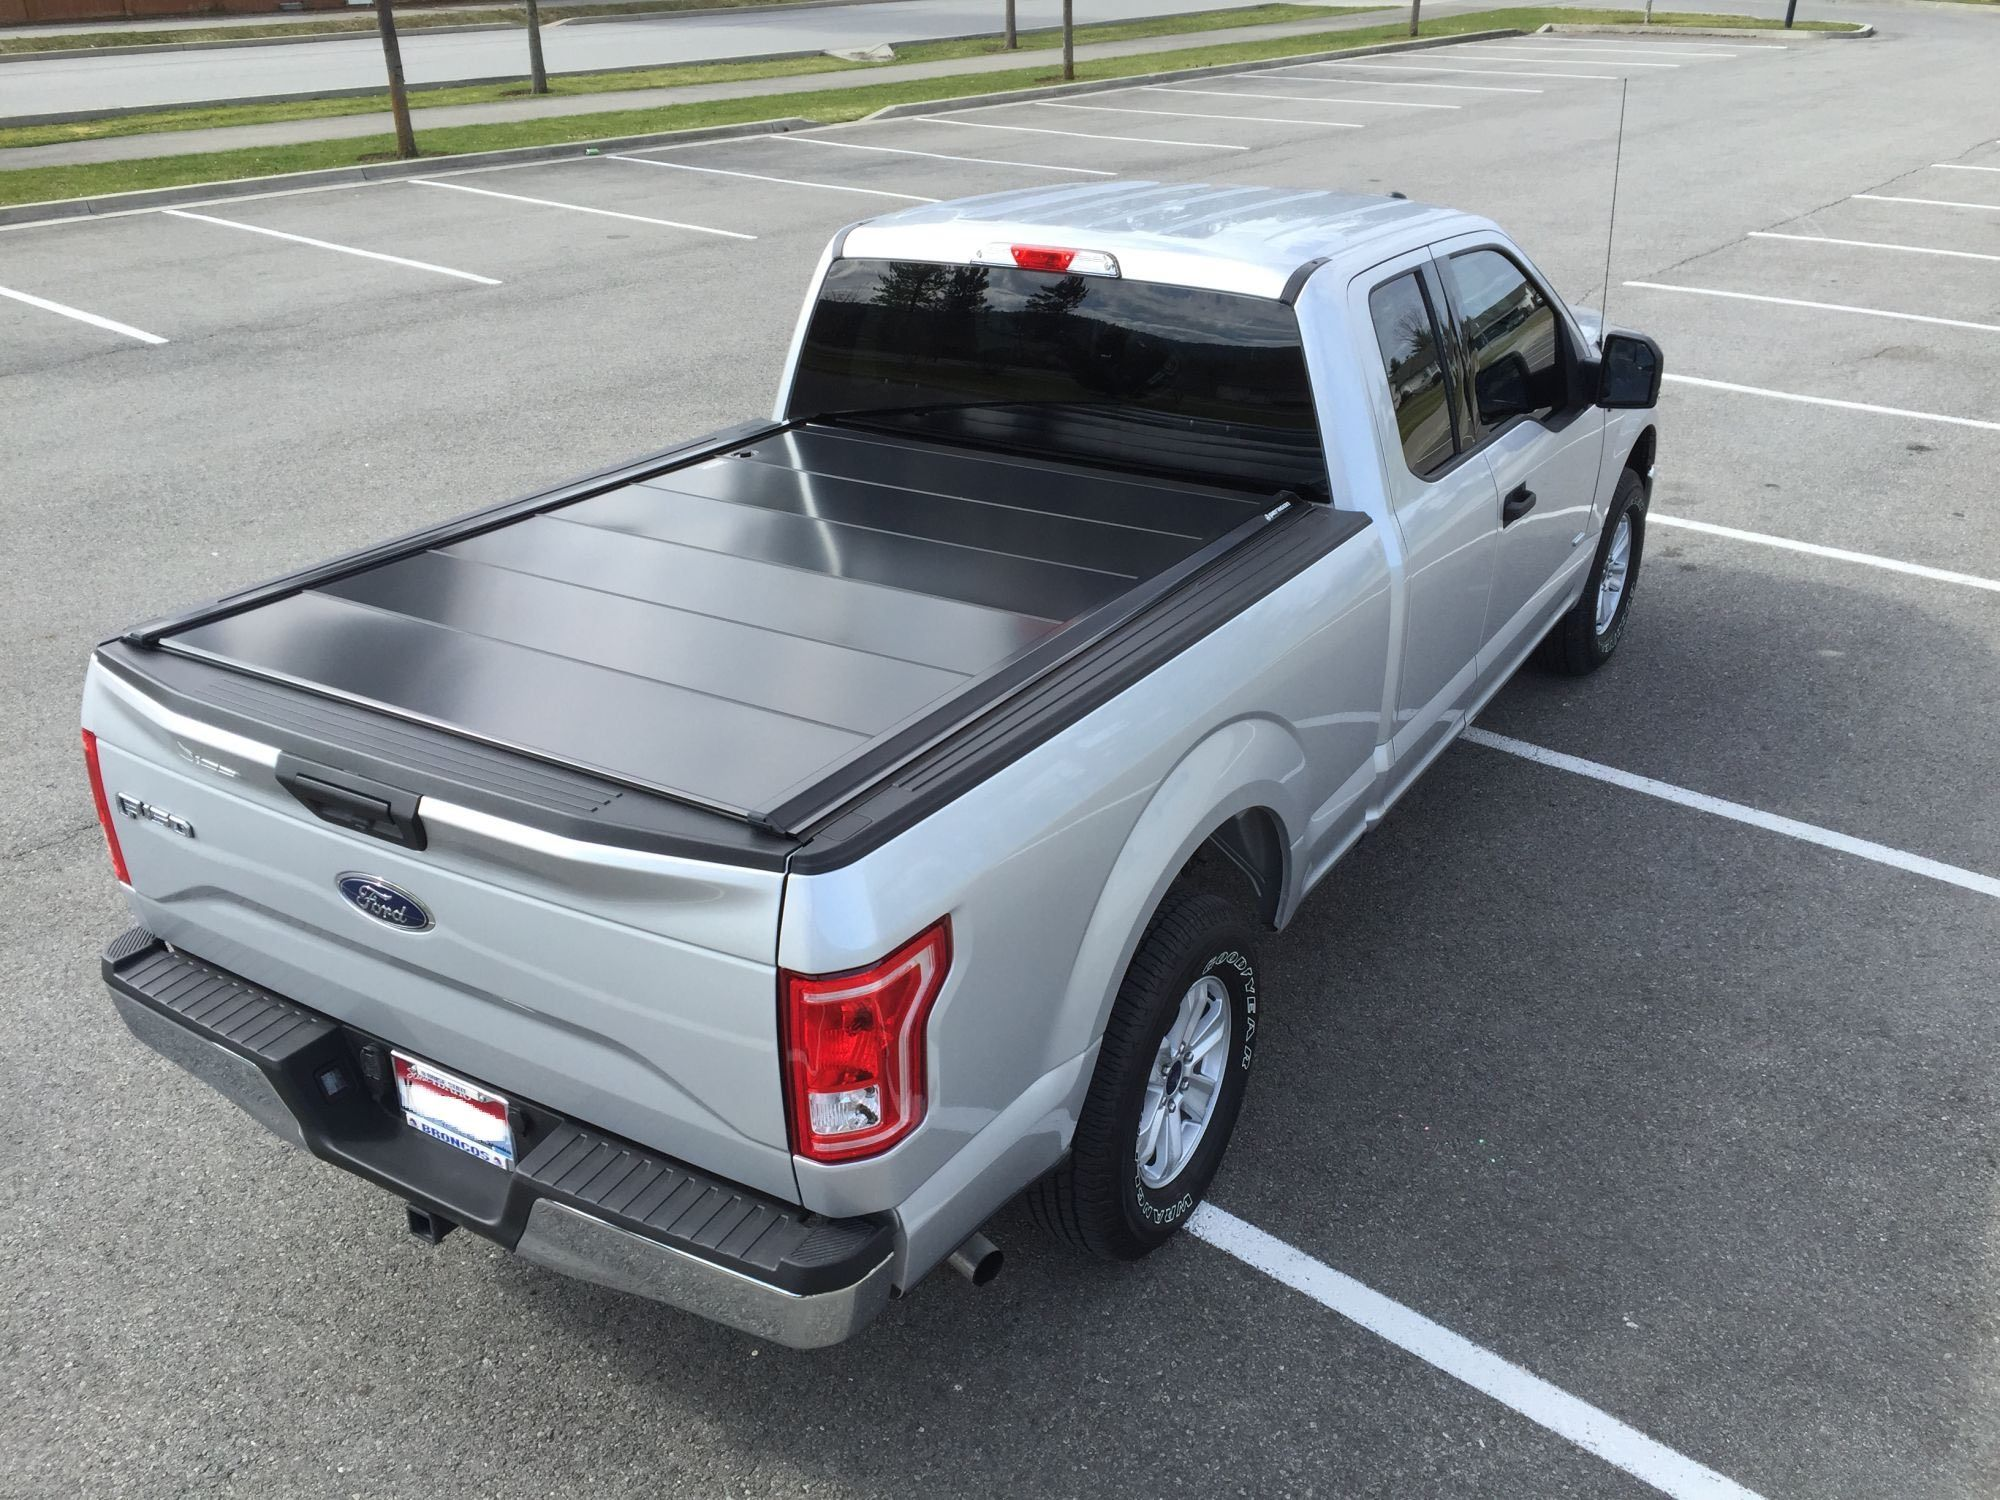 Peragon Retractable Truck Bed Covers For Ford F Series F 150 F 250 F 350 And Ranger Pickup Trucks Truck Bed Covers Truck Bed Srt Jeep